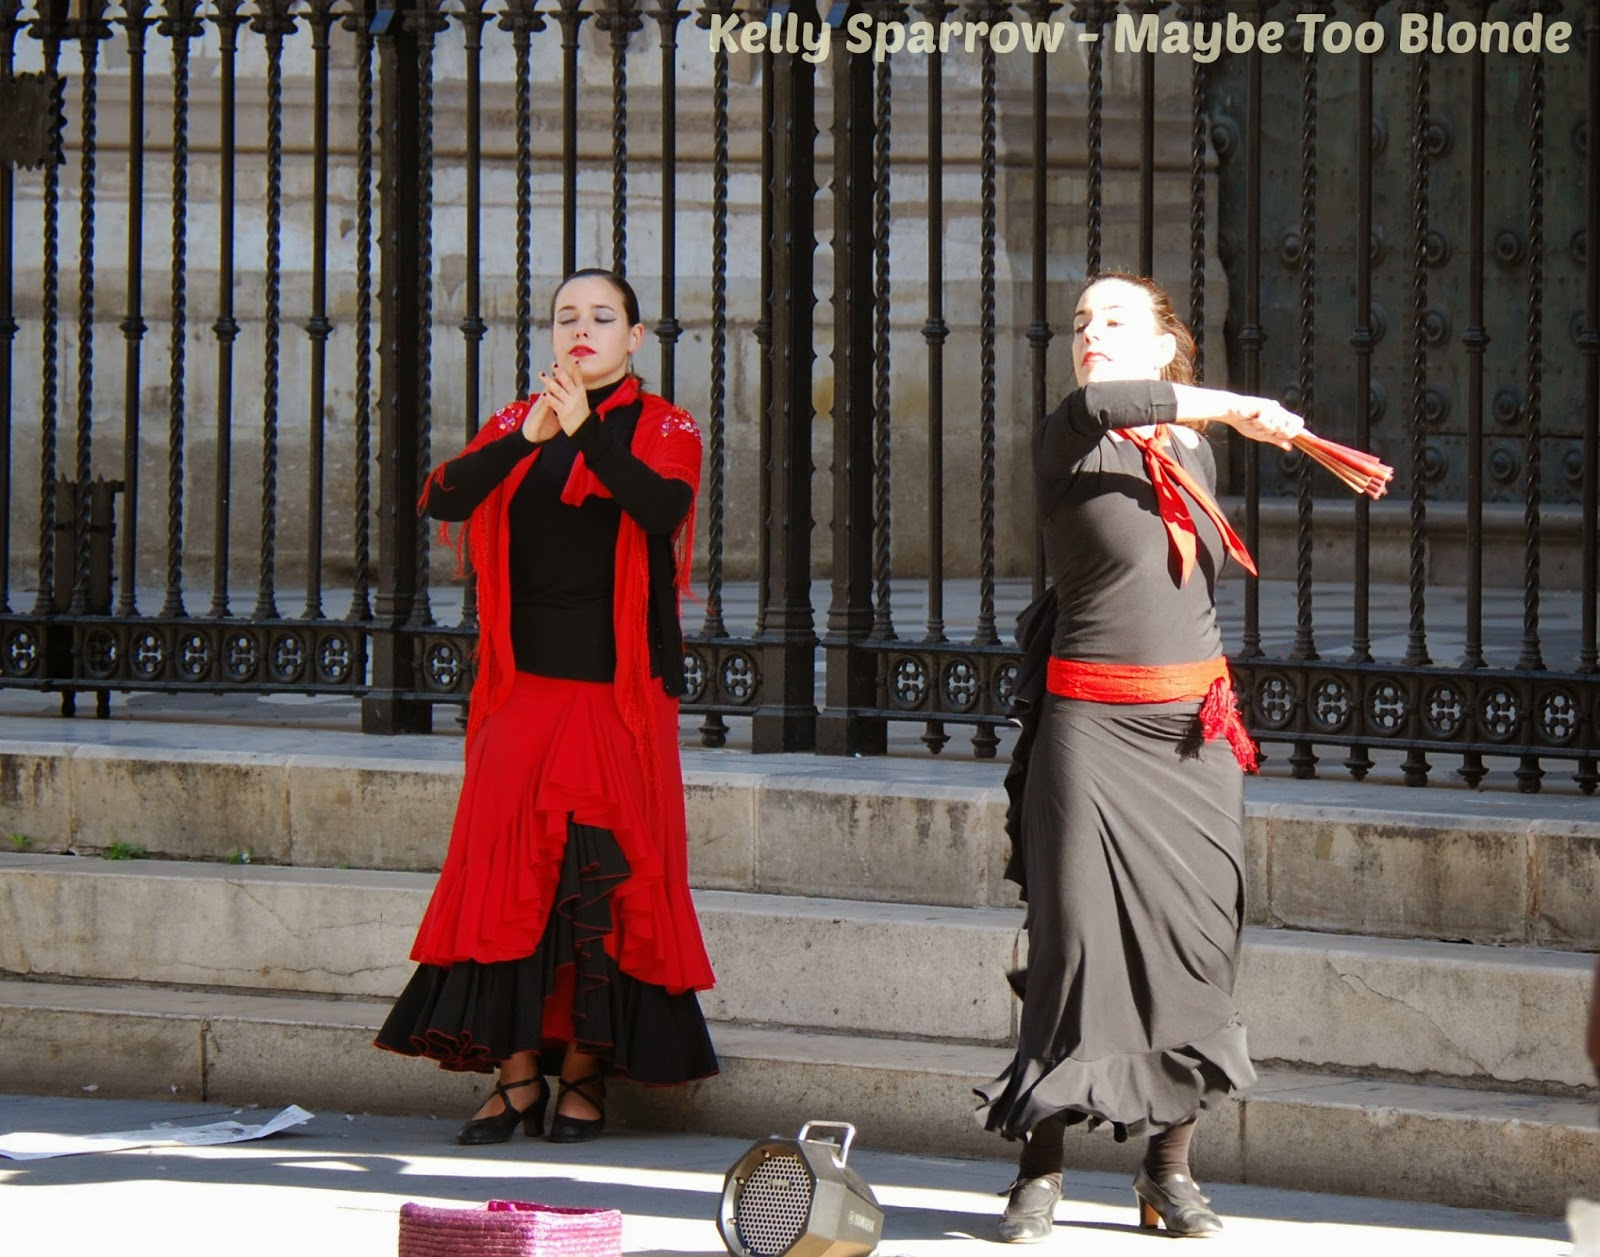 Flamenco dancers, Seville Spain